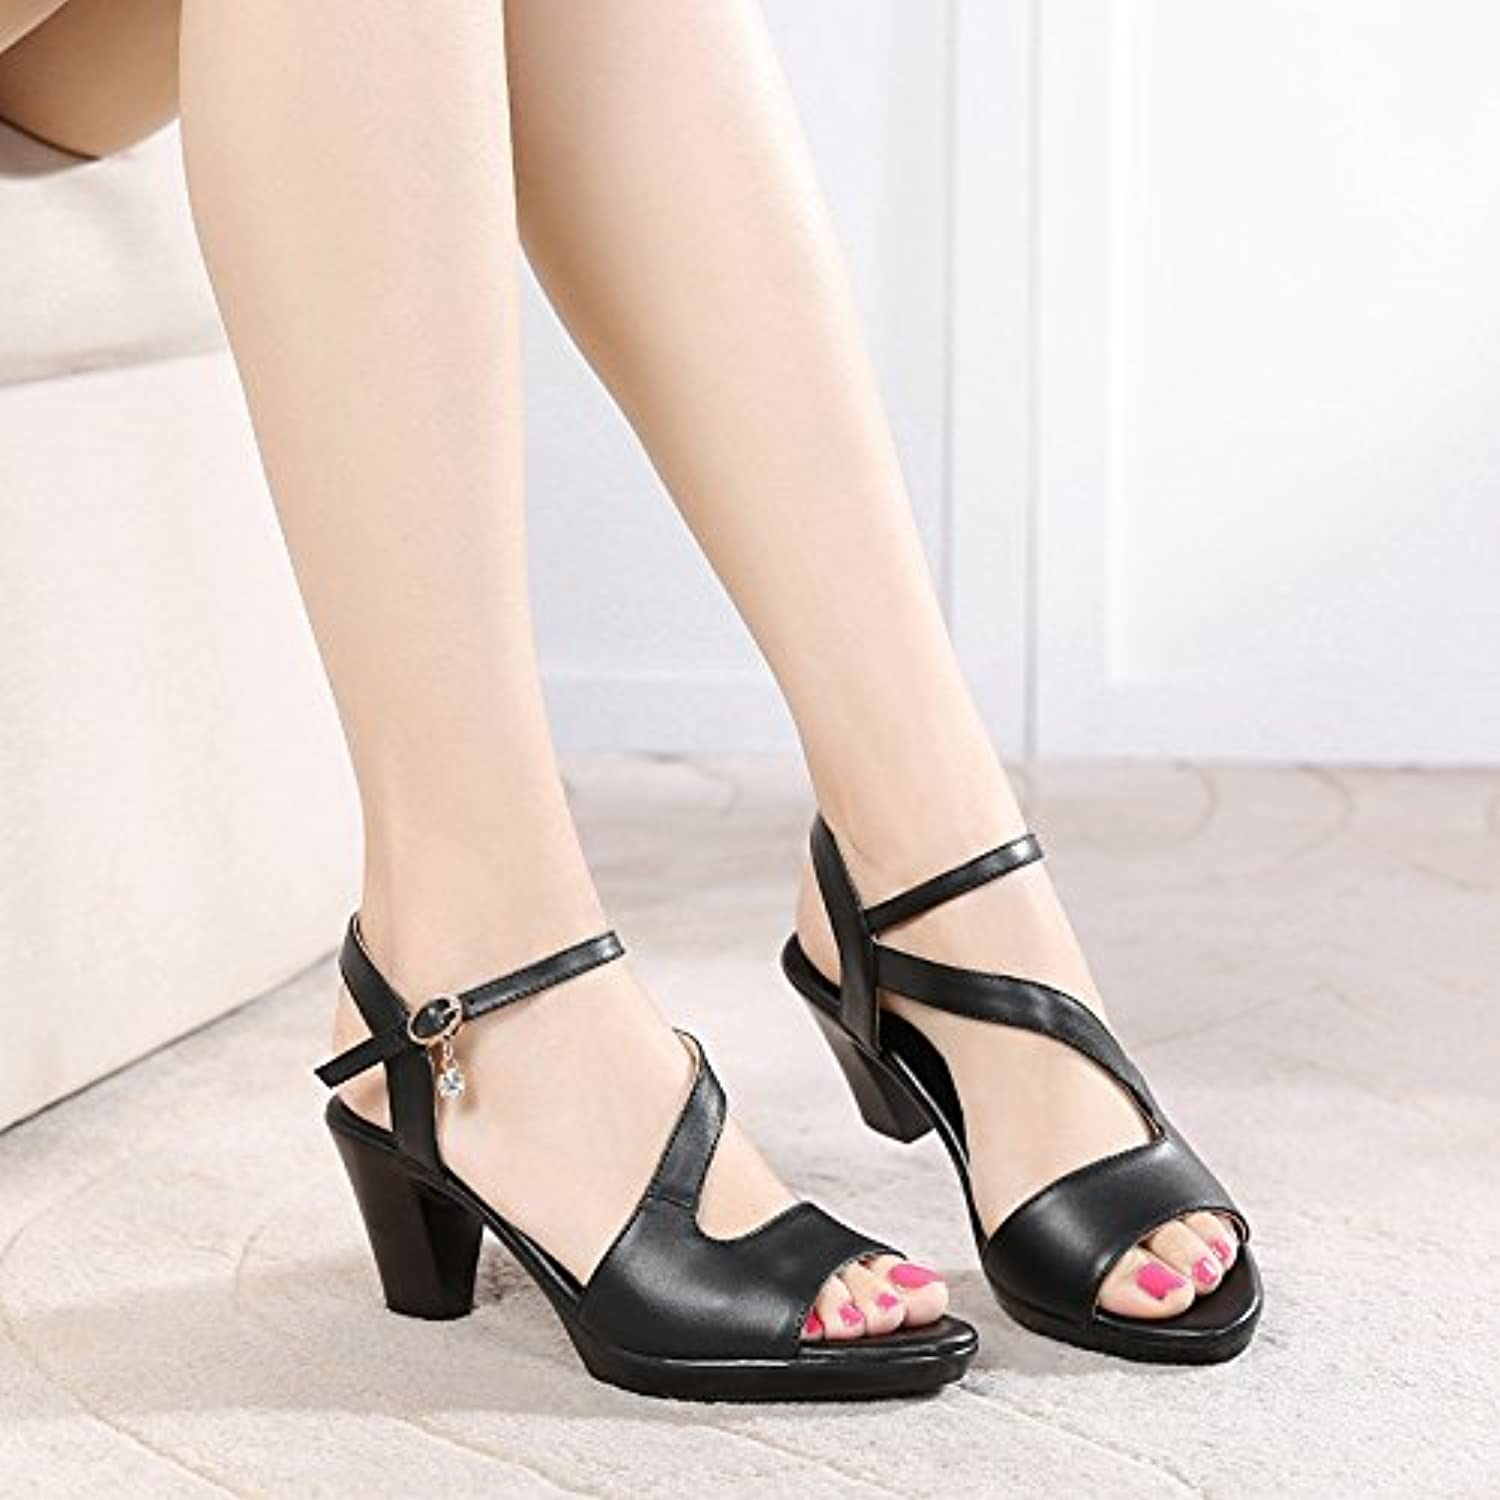 GTVERNH-in Summer 6Cm High Heels Sandals Thick Heels Middle Heels Mama Fish Mouths Middle Aged Women's shoes.